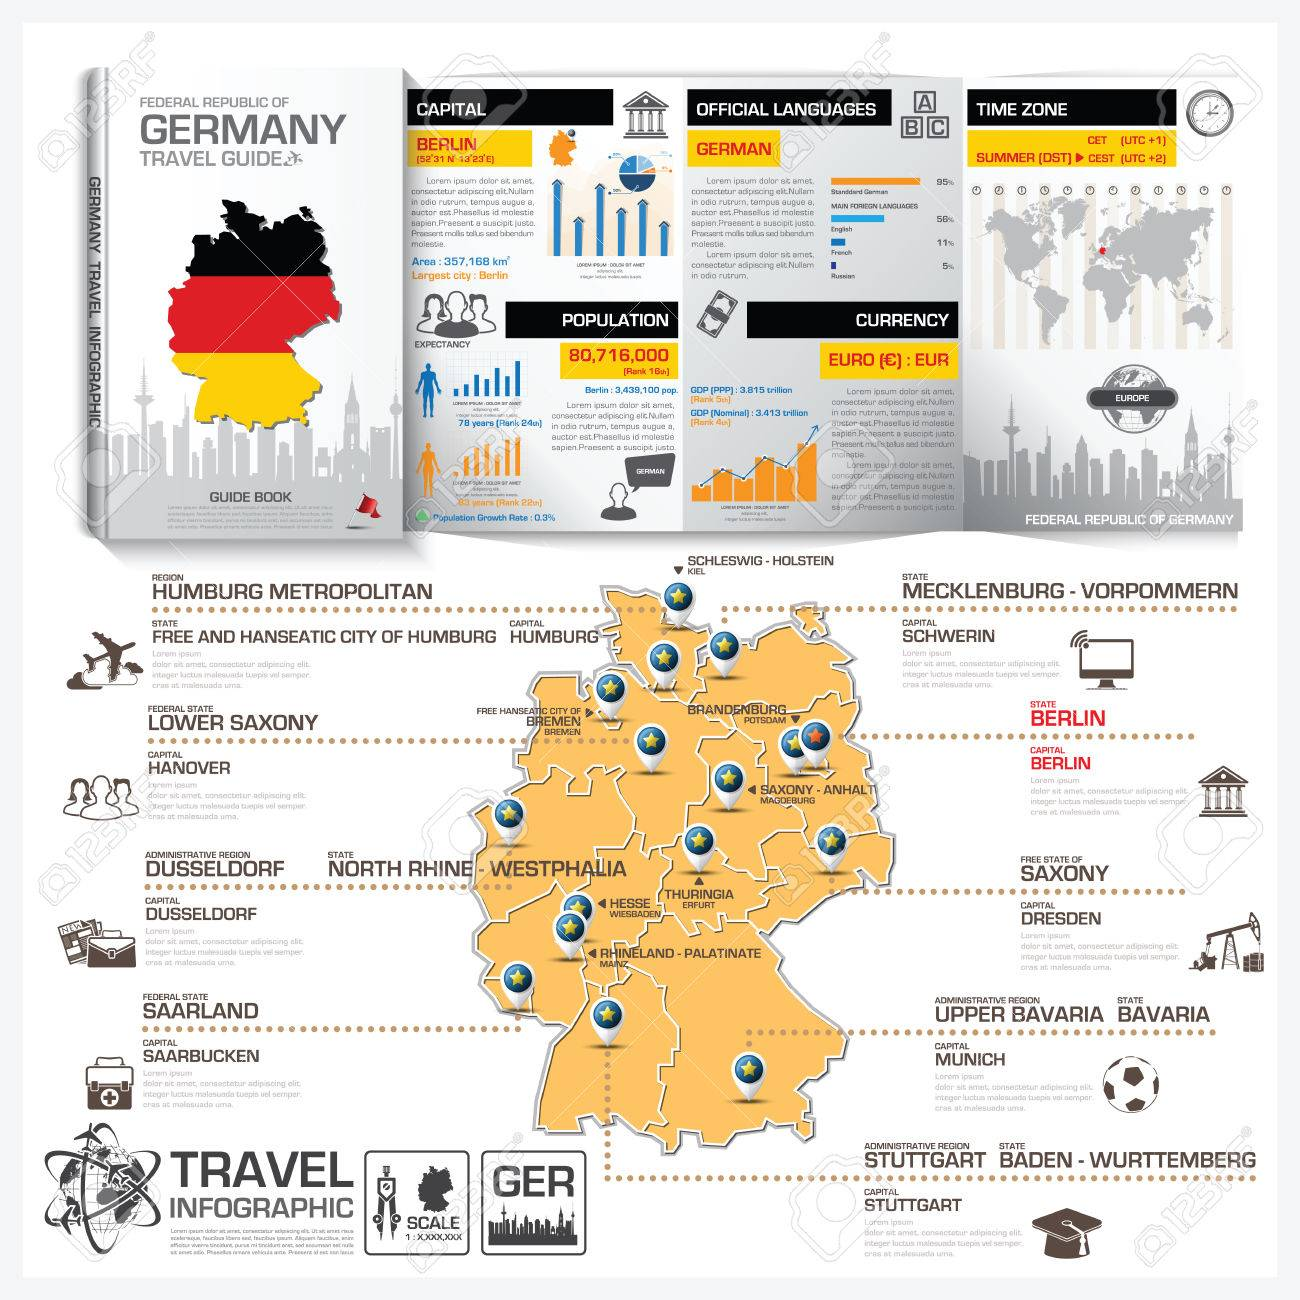 federal republic of germany travel guide book business infographic